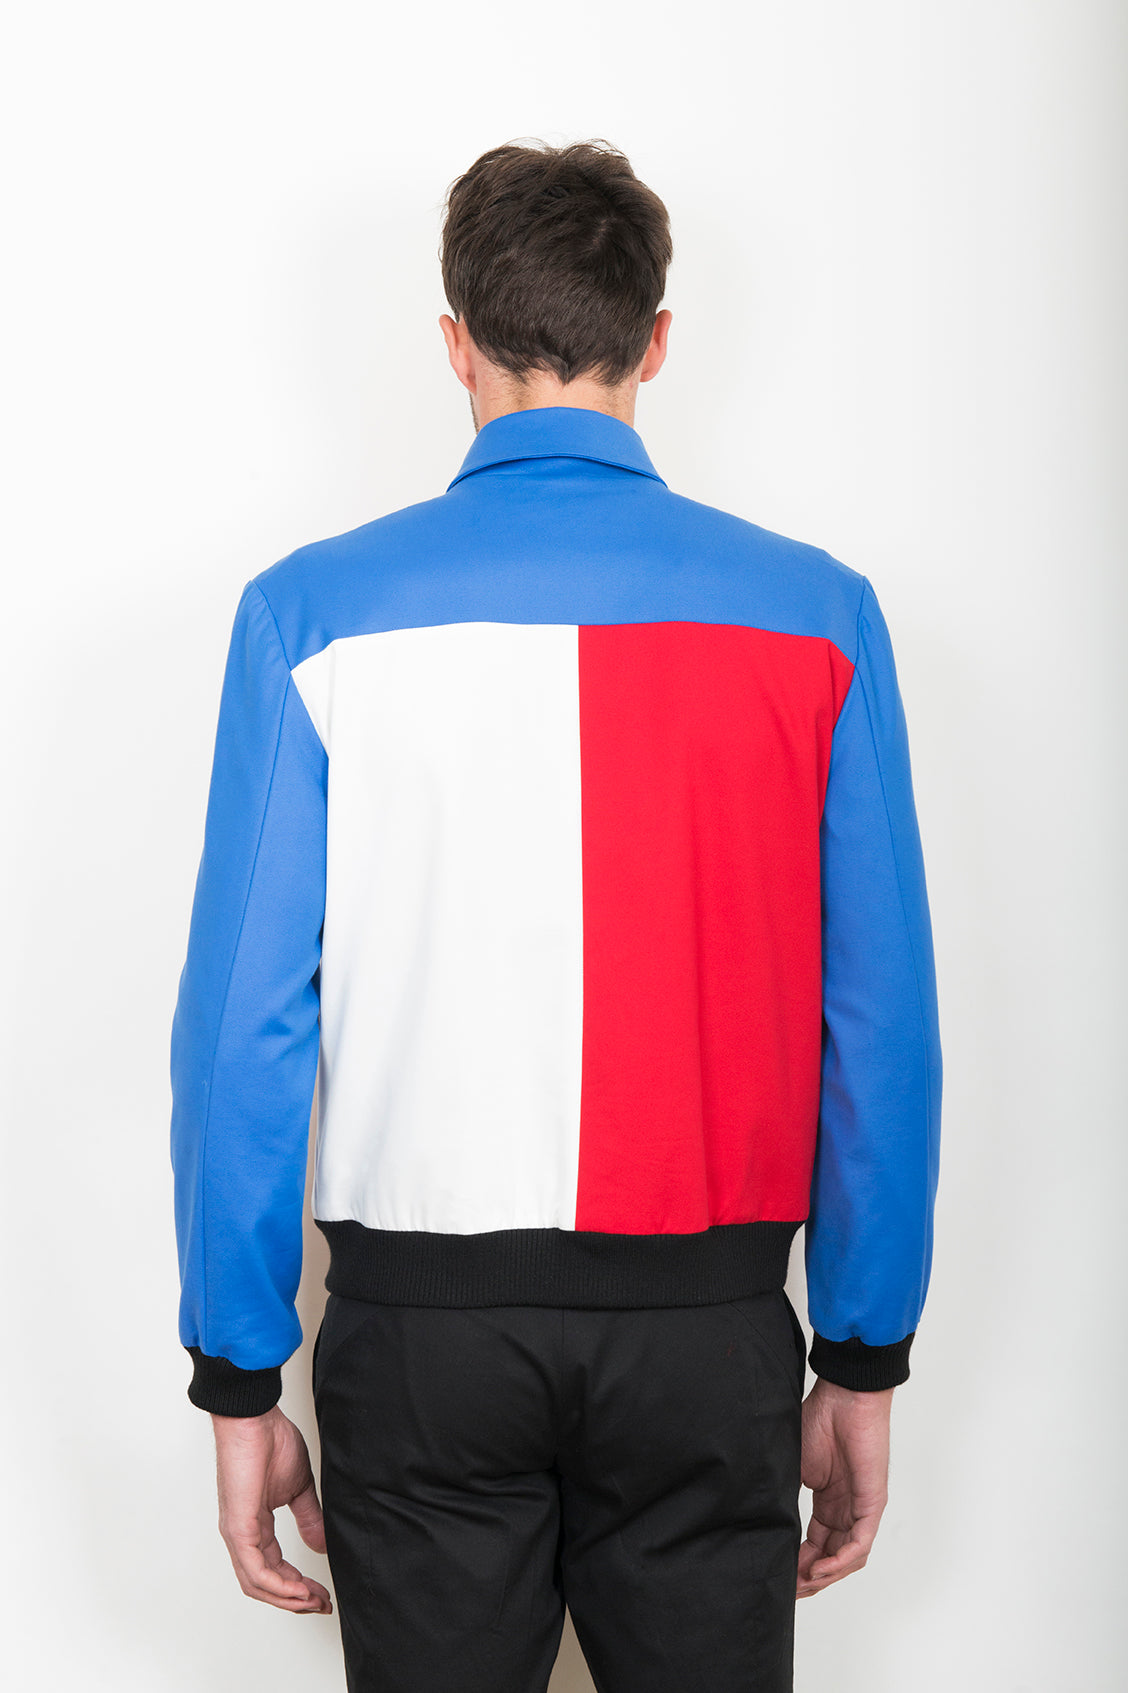 Sébastien Blondin blouson jacket été summer coton cotton tricolore tricolour créateur designer nouveau new basique basic mode fashion homme man men men's world